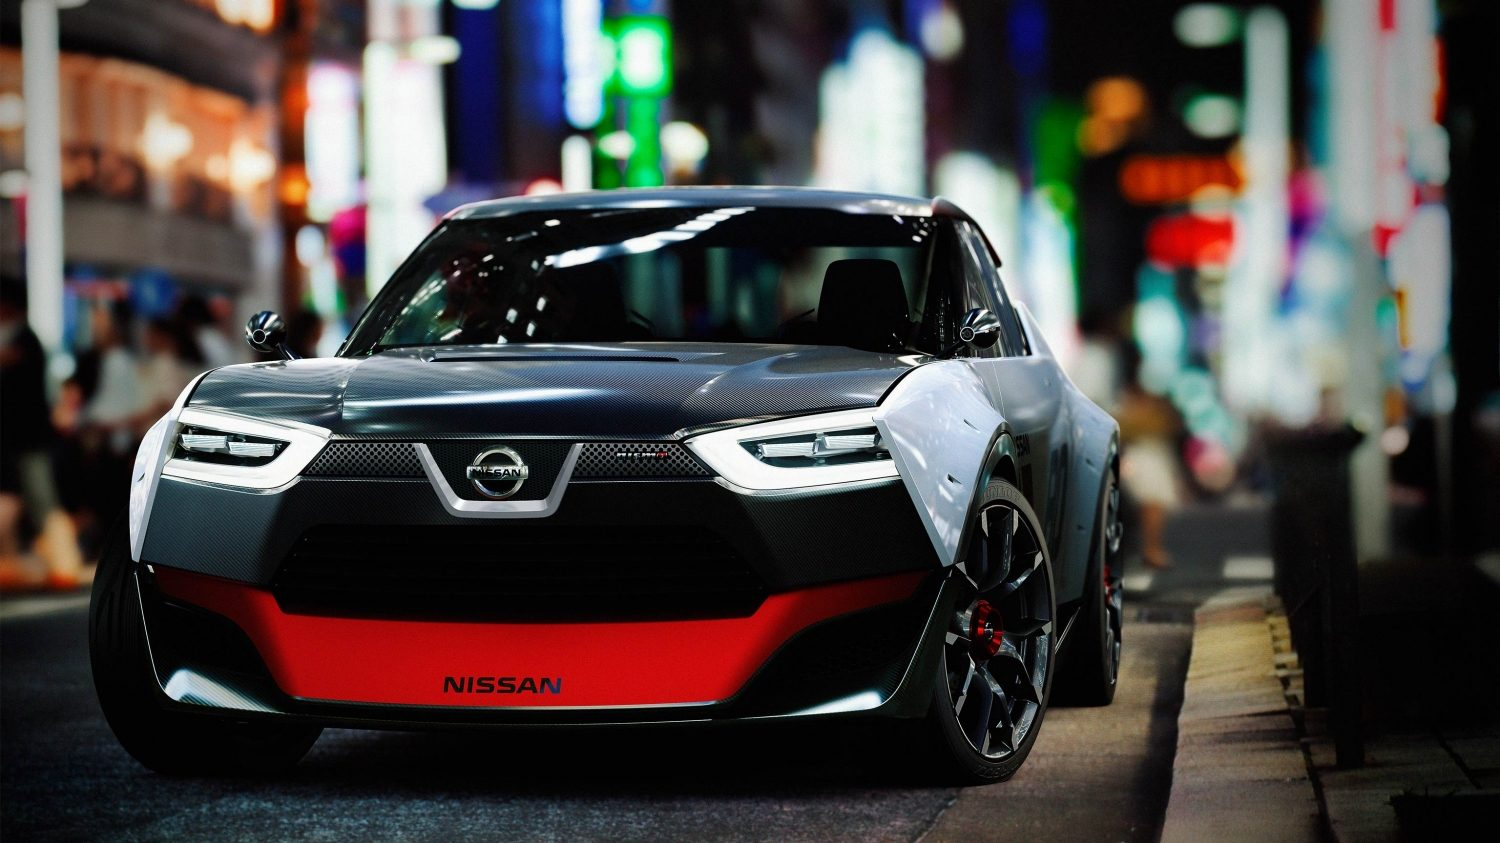 Nissan IDX NISMO Concept. Gallery front city street.